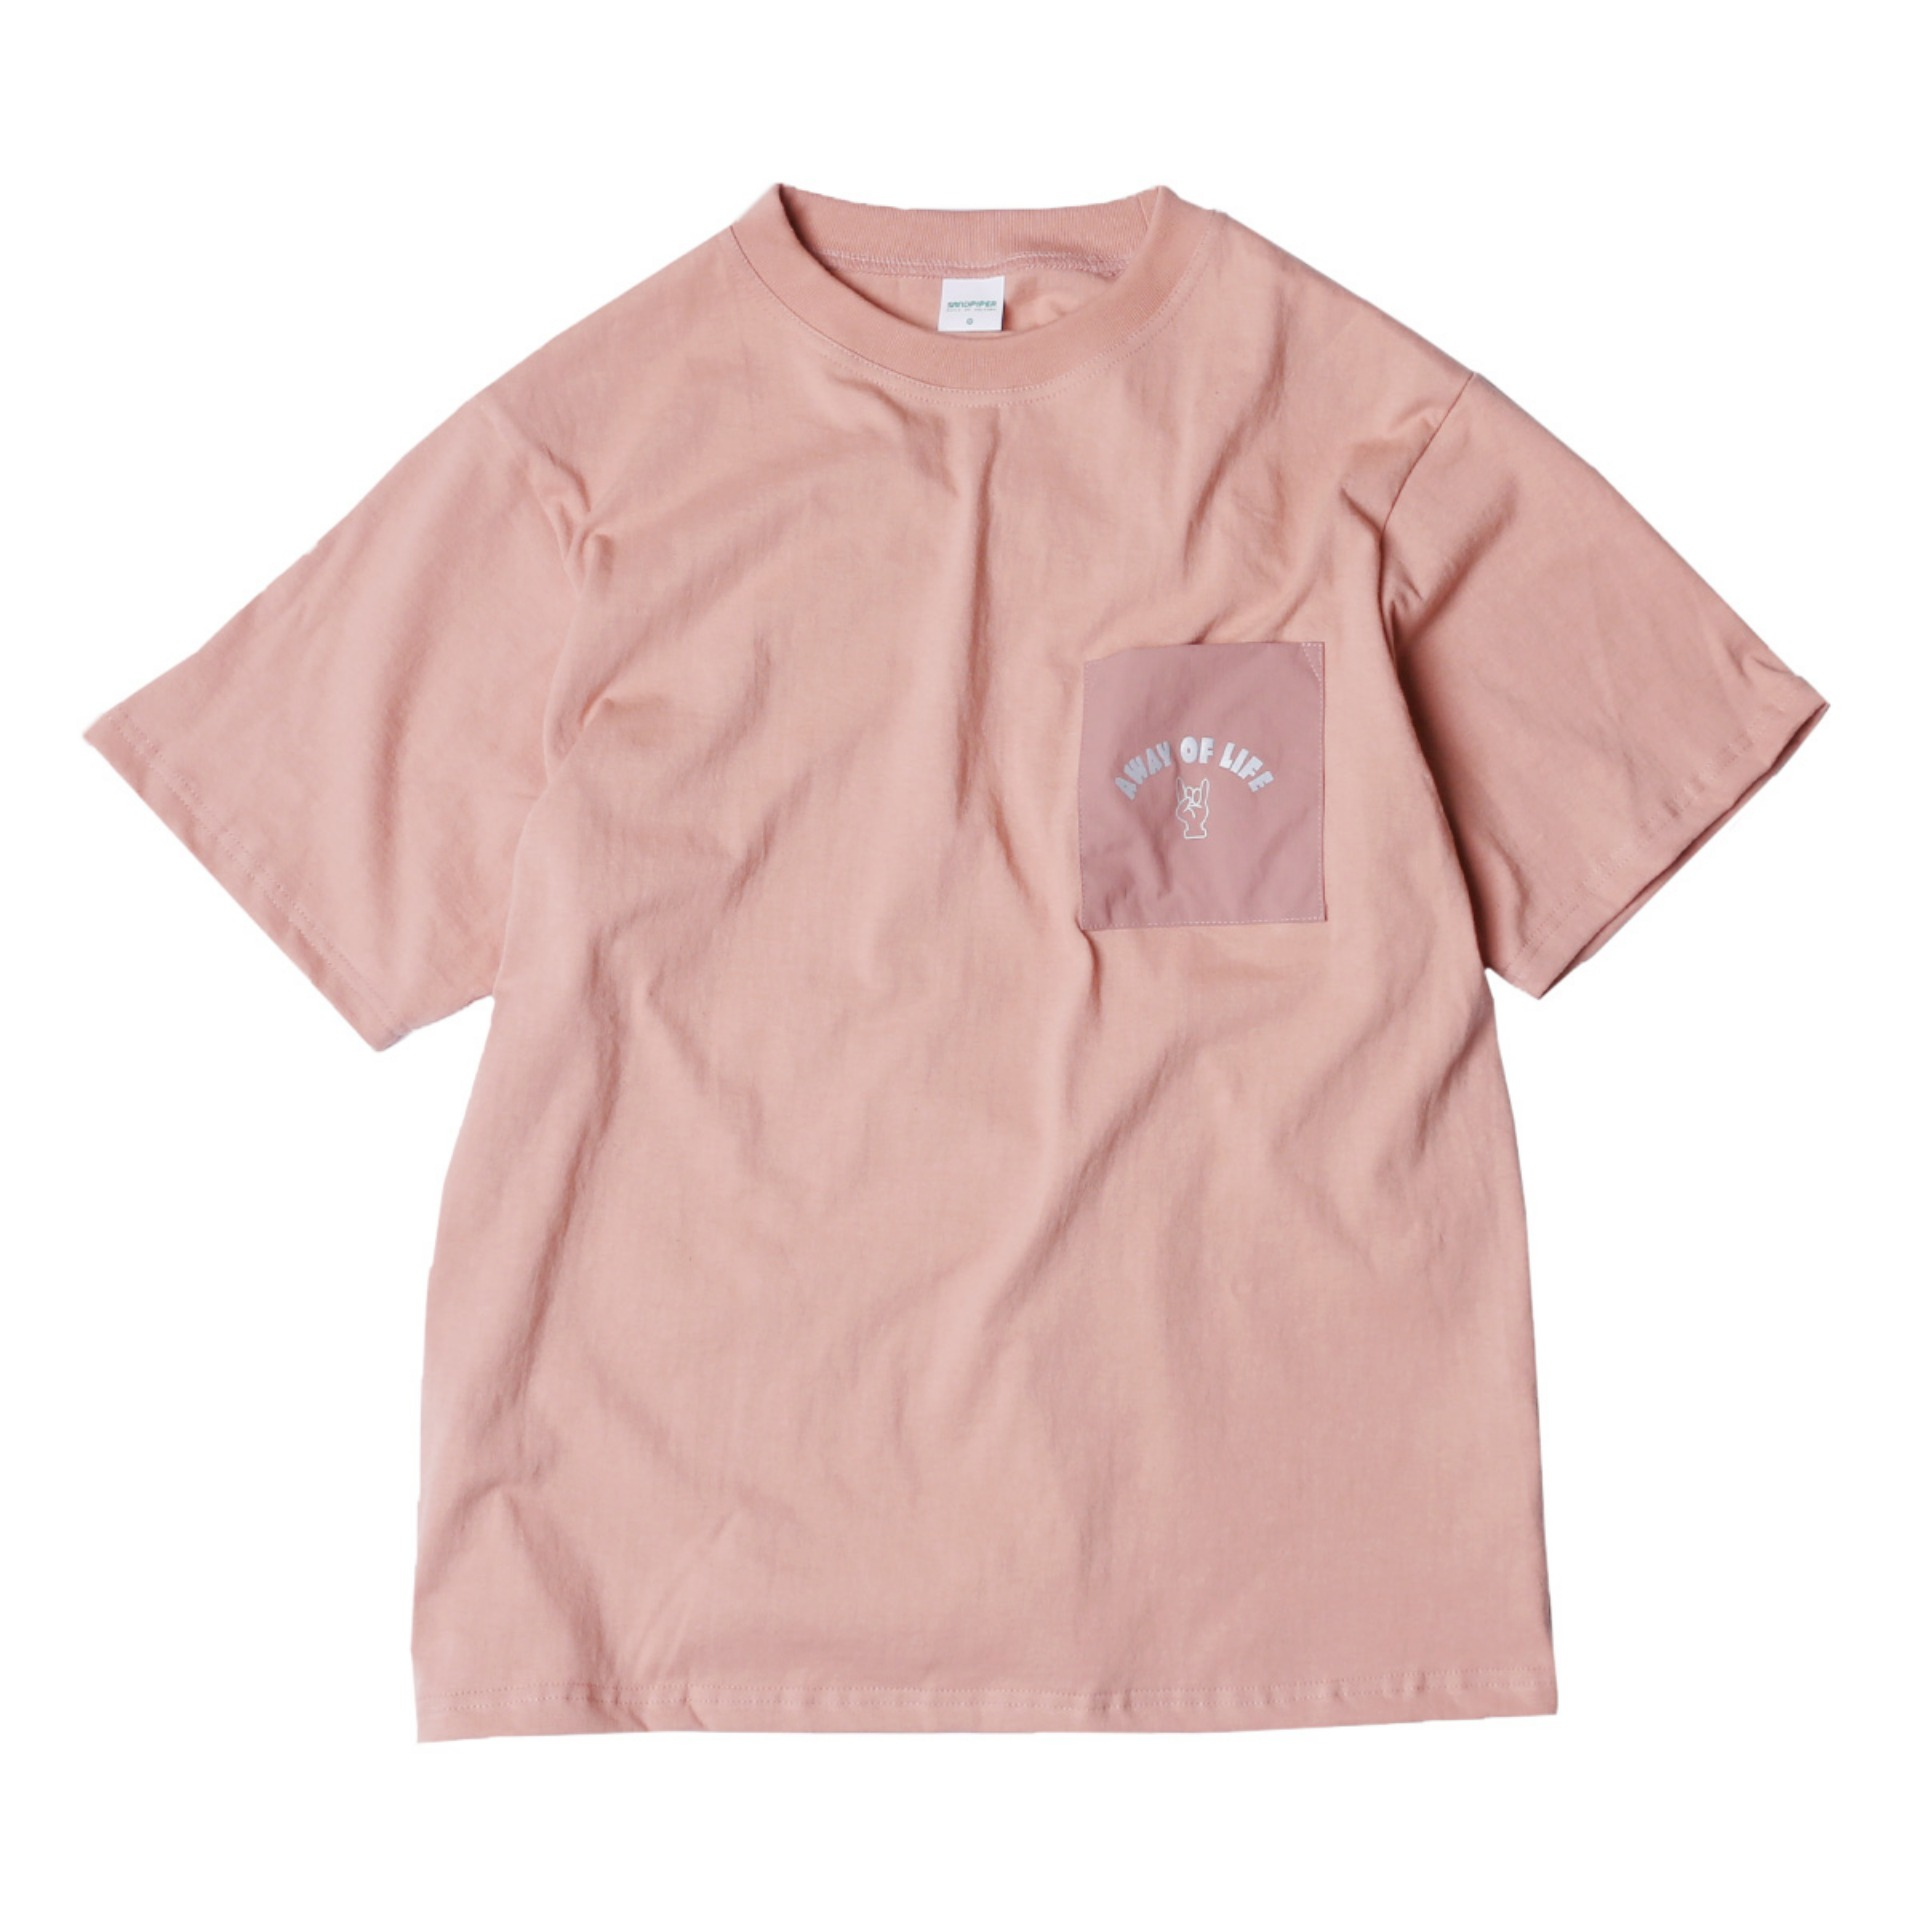 AWAY OF LIFE POCKET T SHIRTS(INDI PINK)